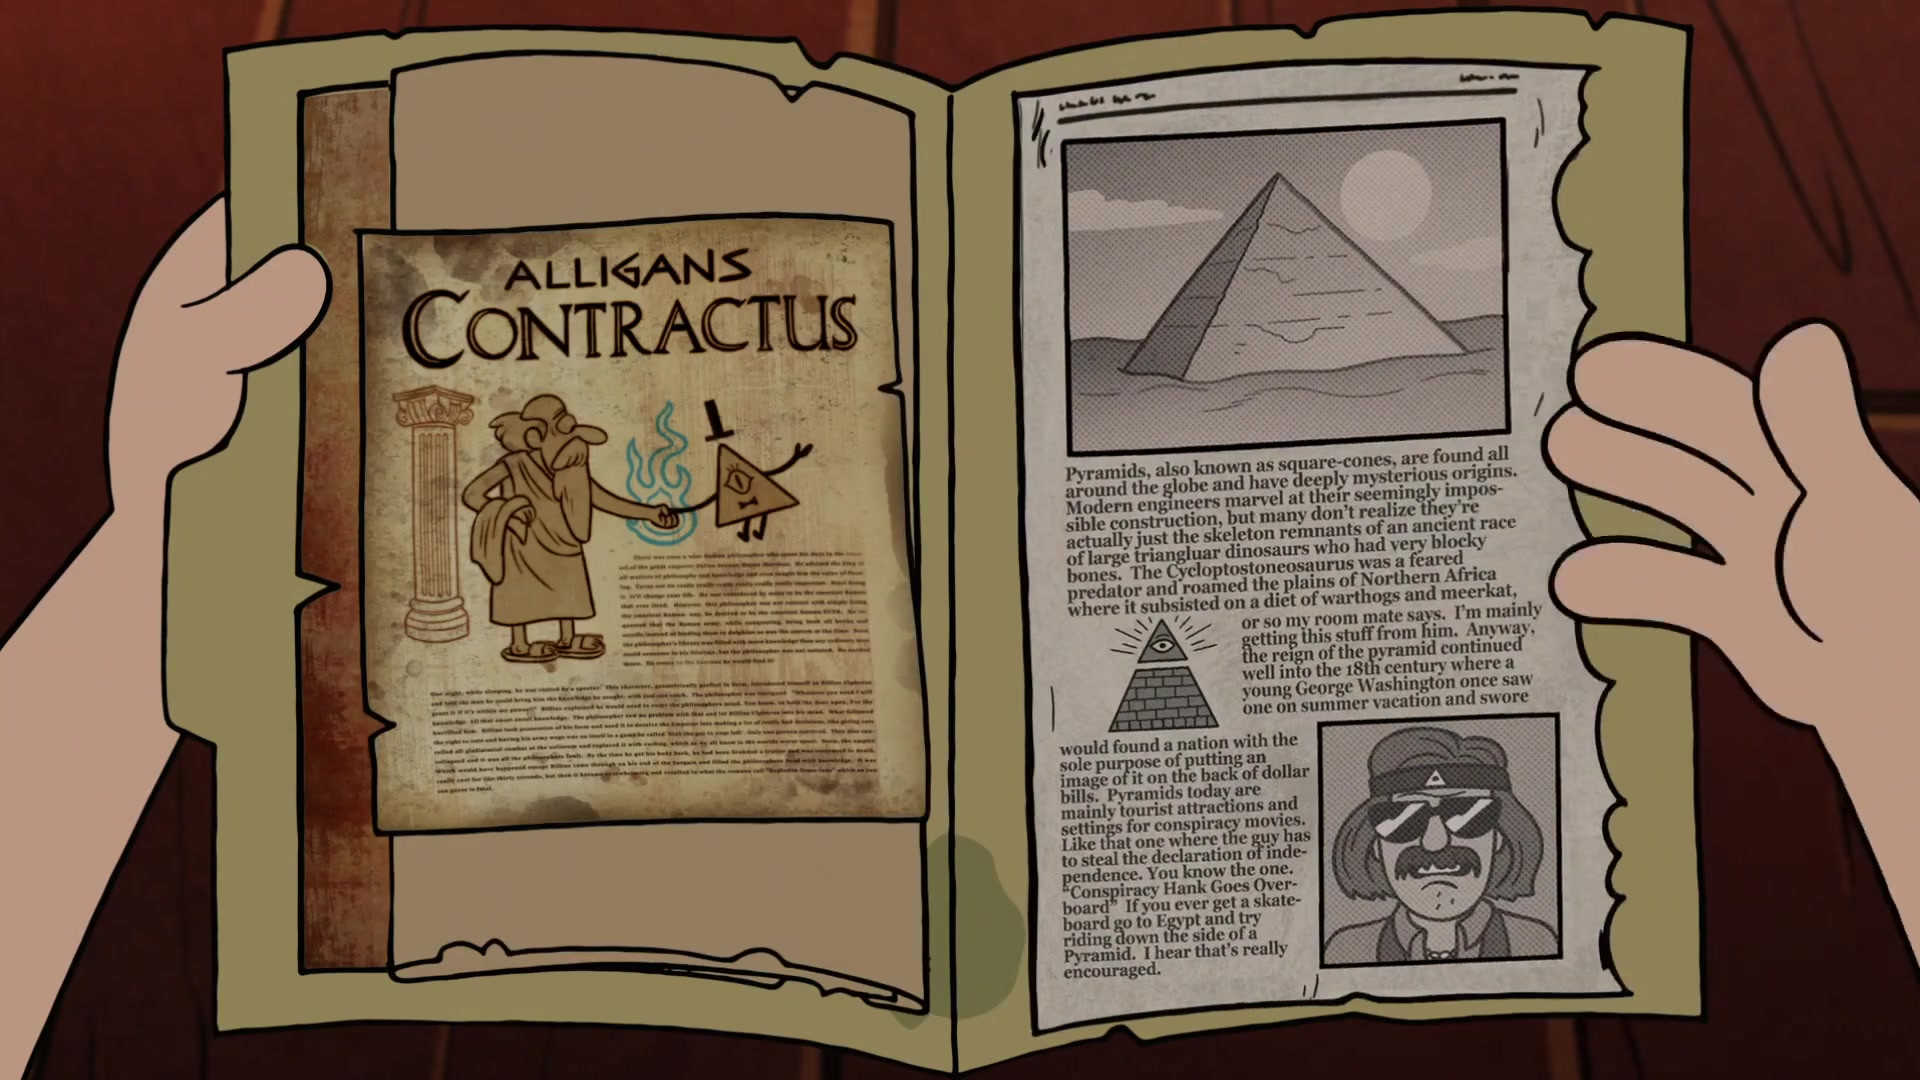 … people's minds, Bill has influenced and subtly manipulated humans  throughout history (for example, the Egyptian pyramids were created in his  image, …